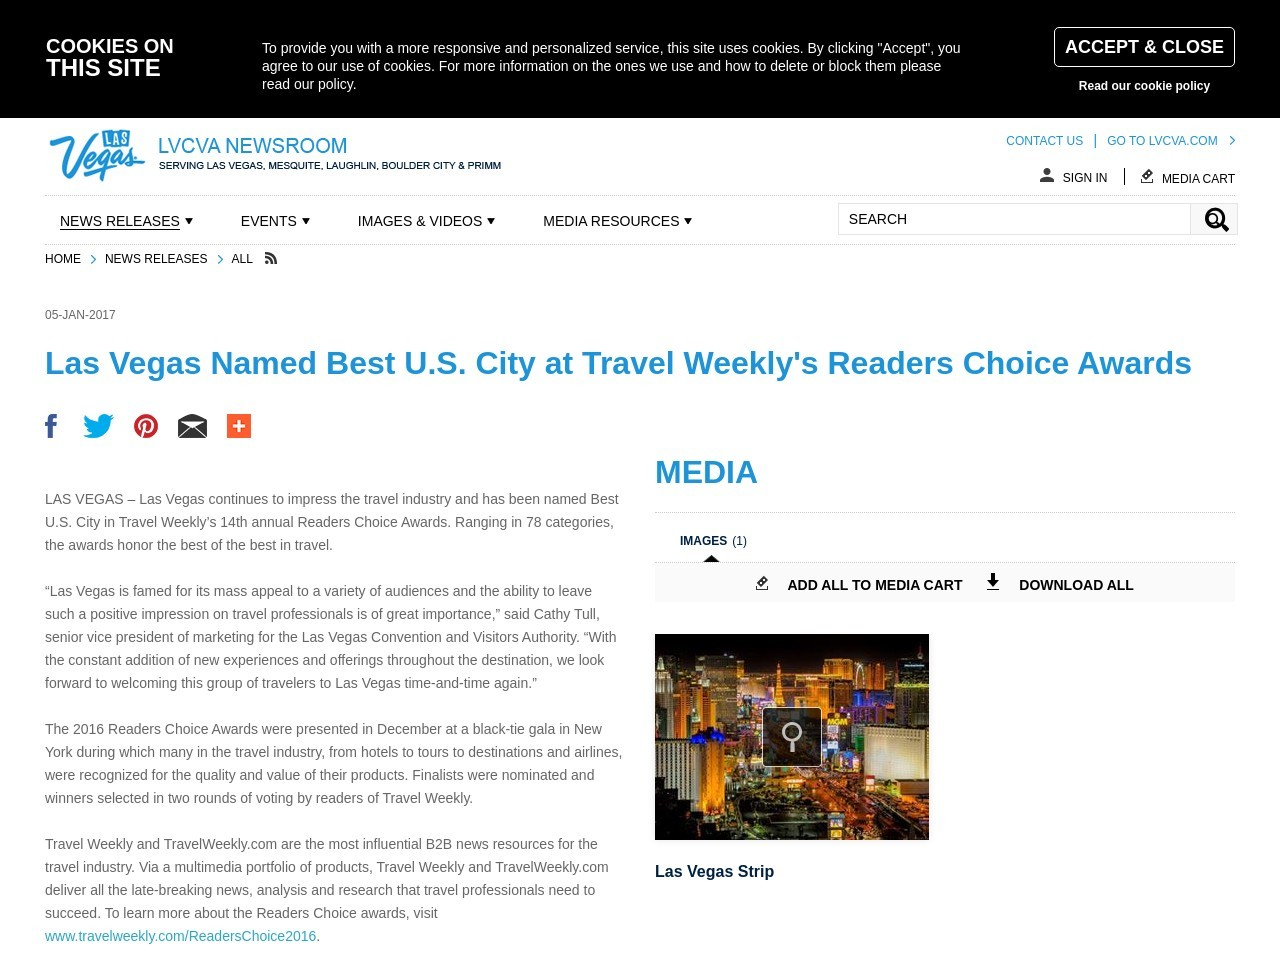 Las Vegas Named Best U.S. City at Travel Weekly's Readers Choice Awards